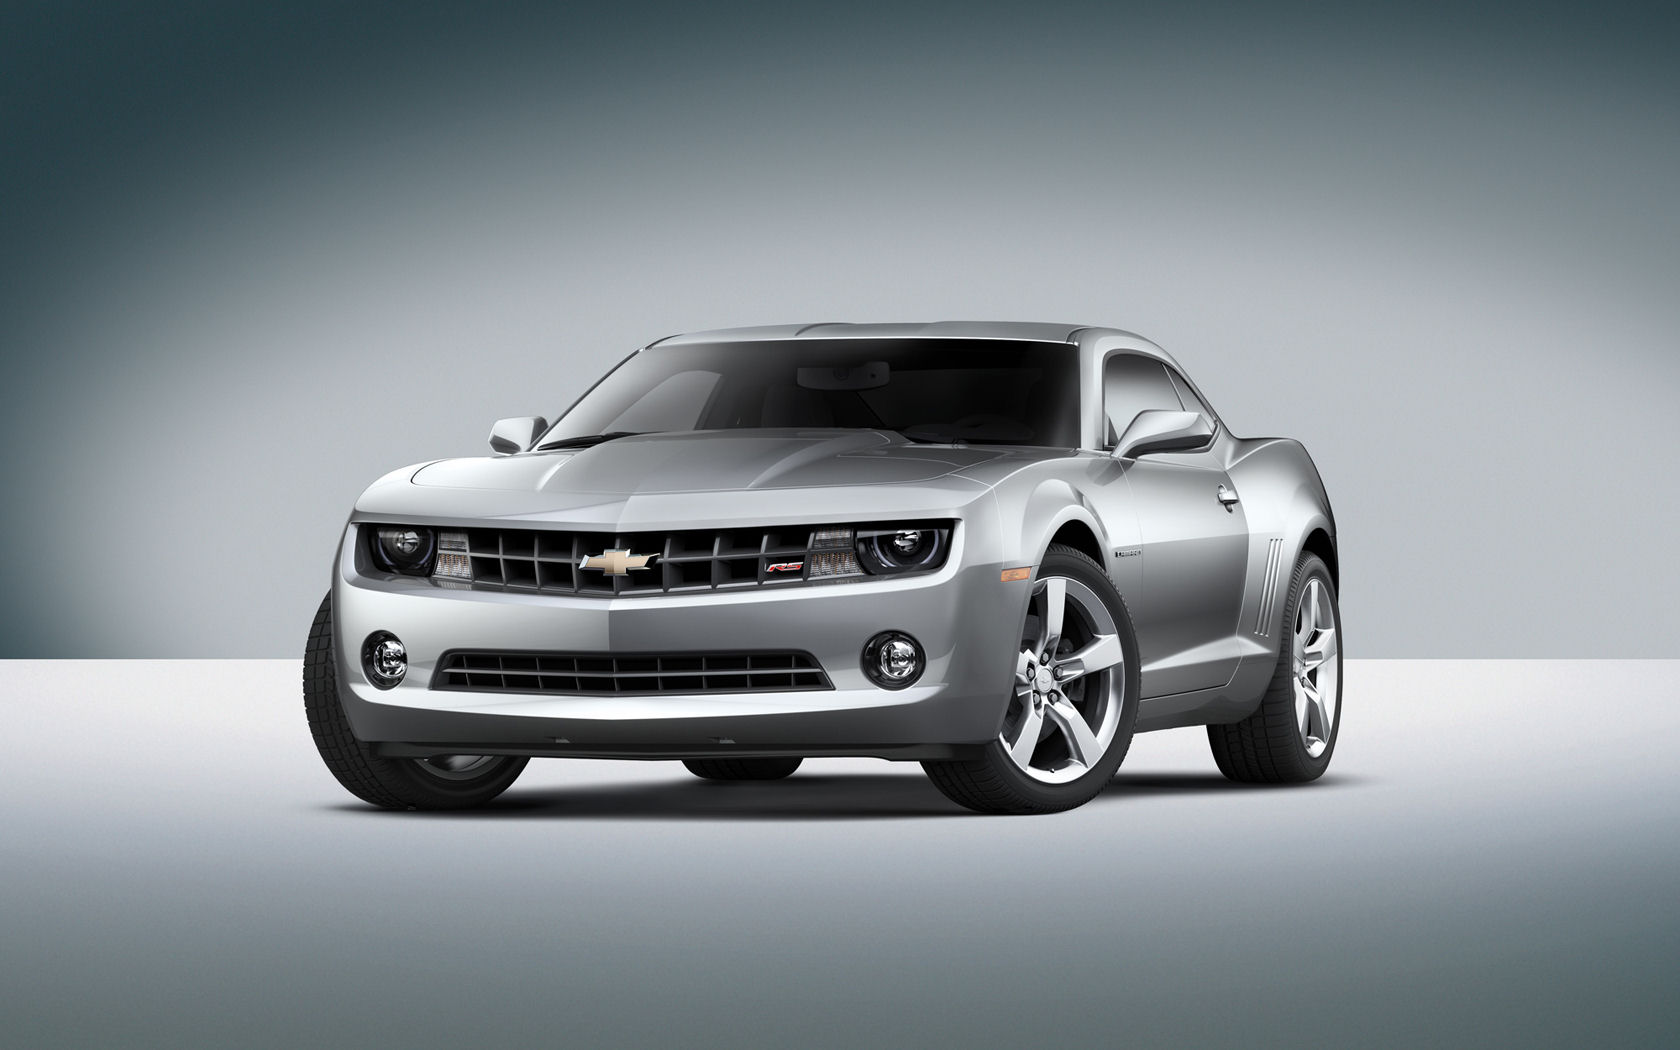 Chevrolet Chevrolet Camaro Chevrolet Camaro Desktop Wallpapers 1680x1050